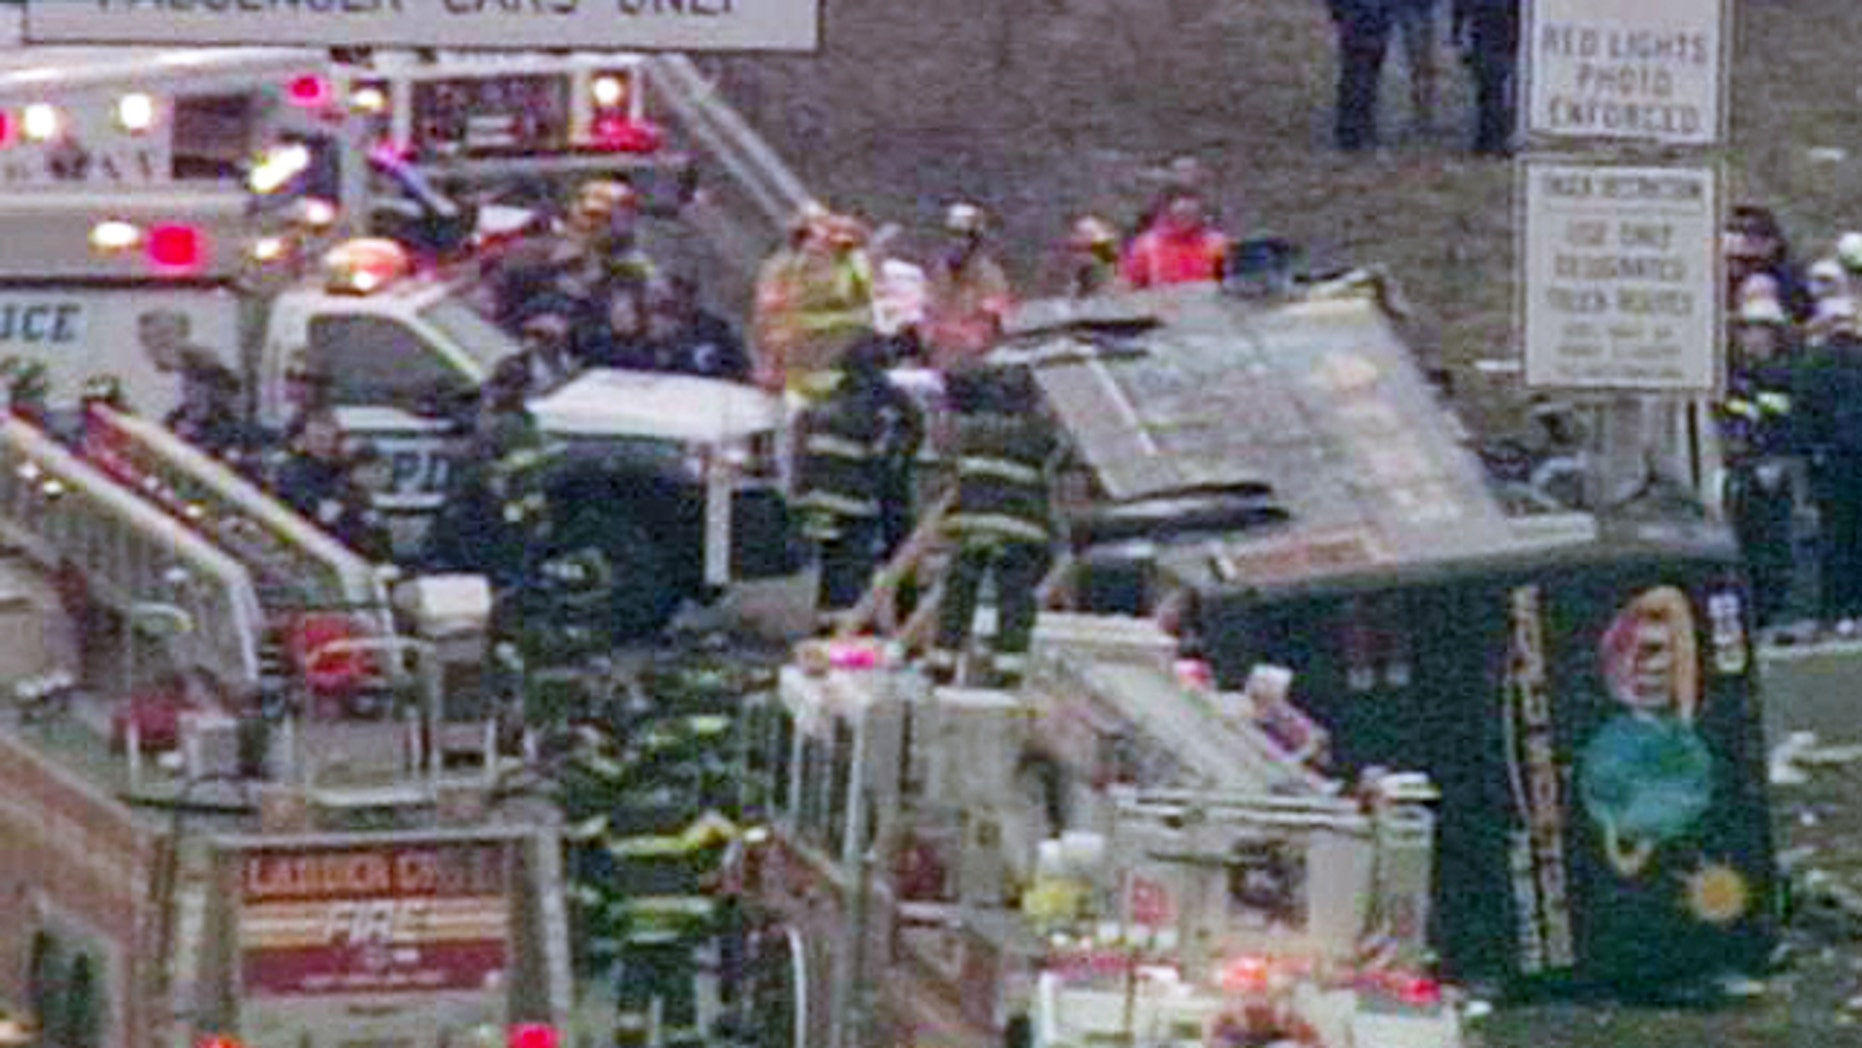 March 12: Fire and rescue officials surround a tour bus that overturned on the New England Thruway in the Bronx, killing at least 13 people.